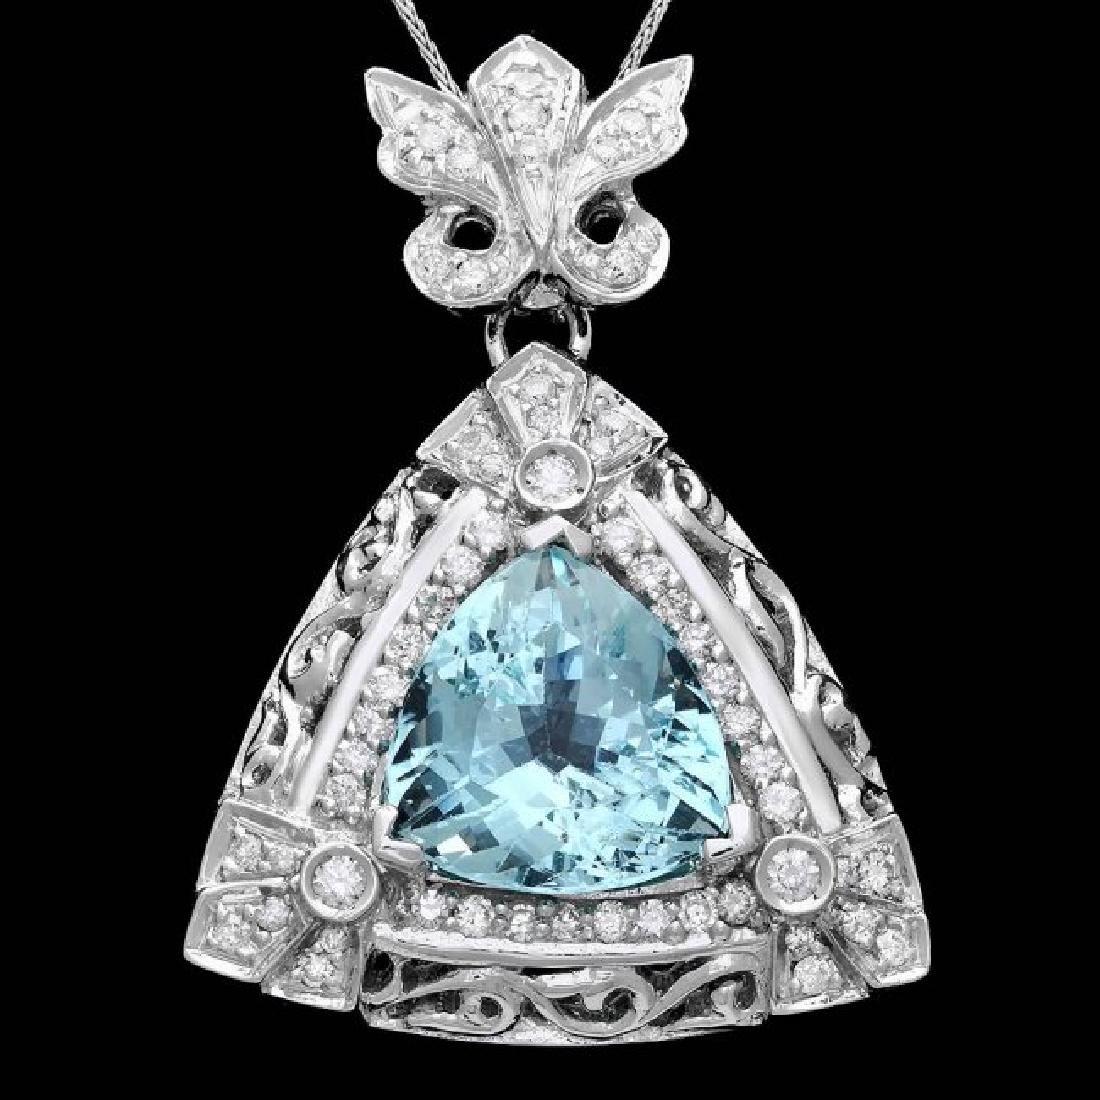 14k W Gold 10ct Aquamarine 1.35ct Diamond Pendant